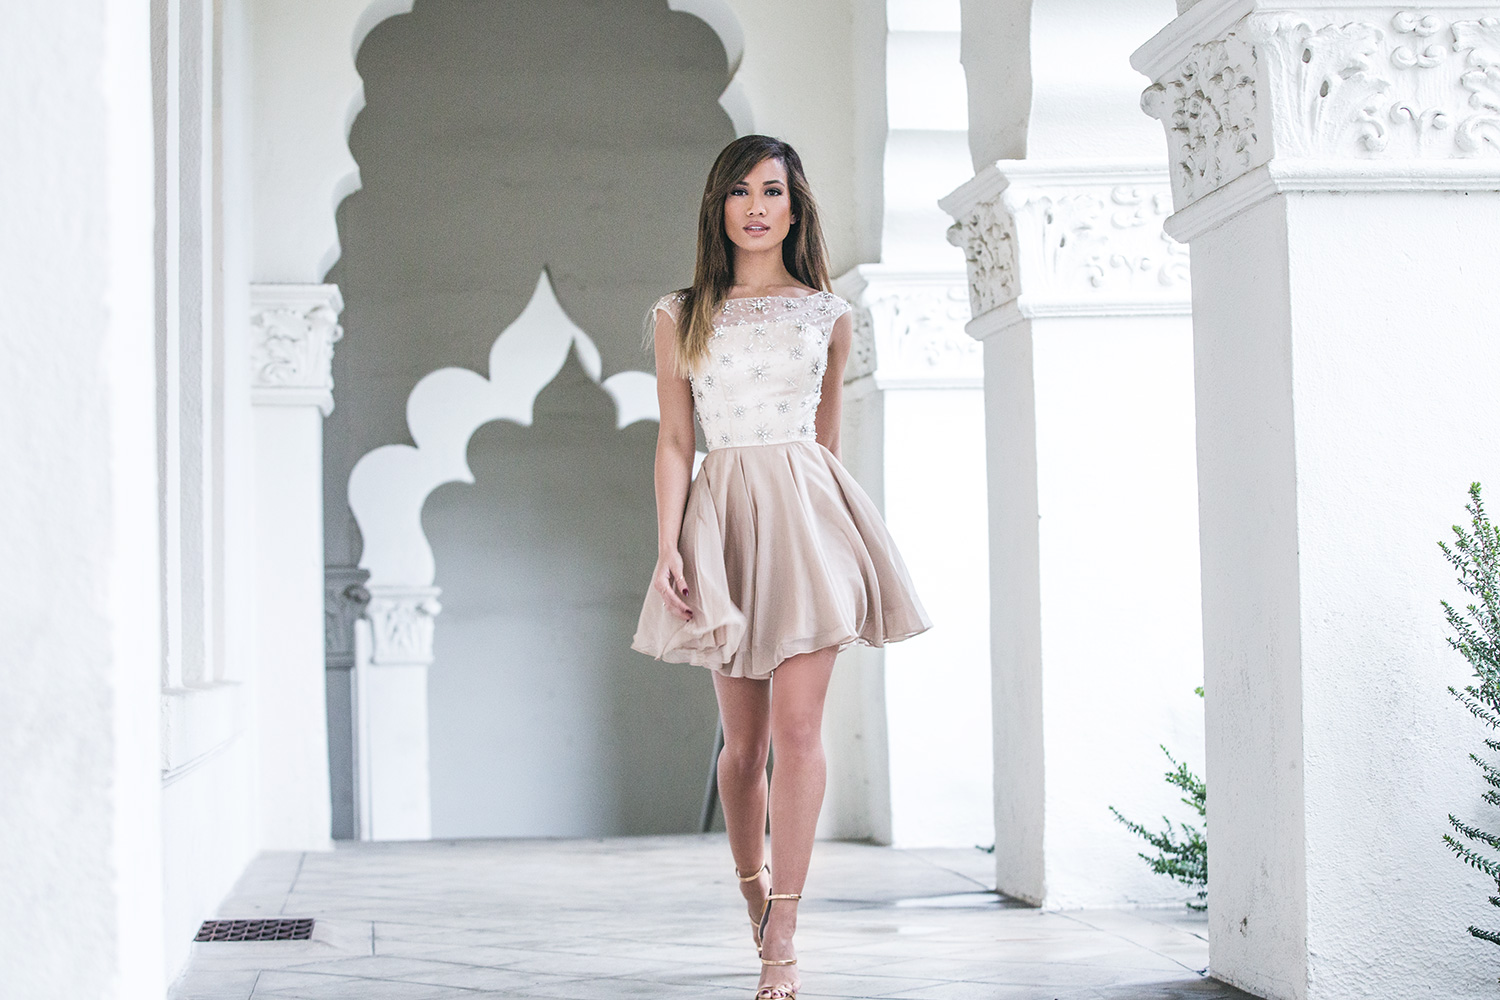 Jessi Malay wearing Glam Union Avelina Dress